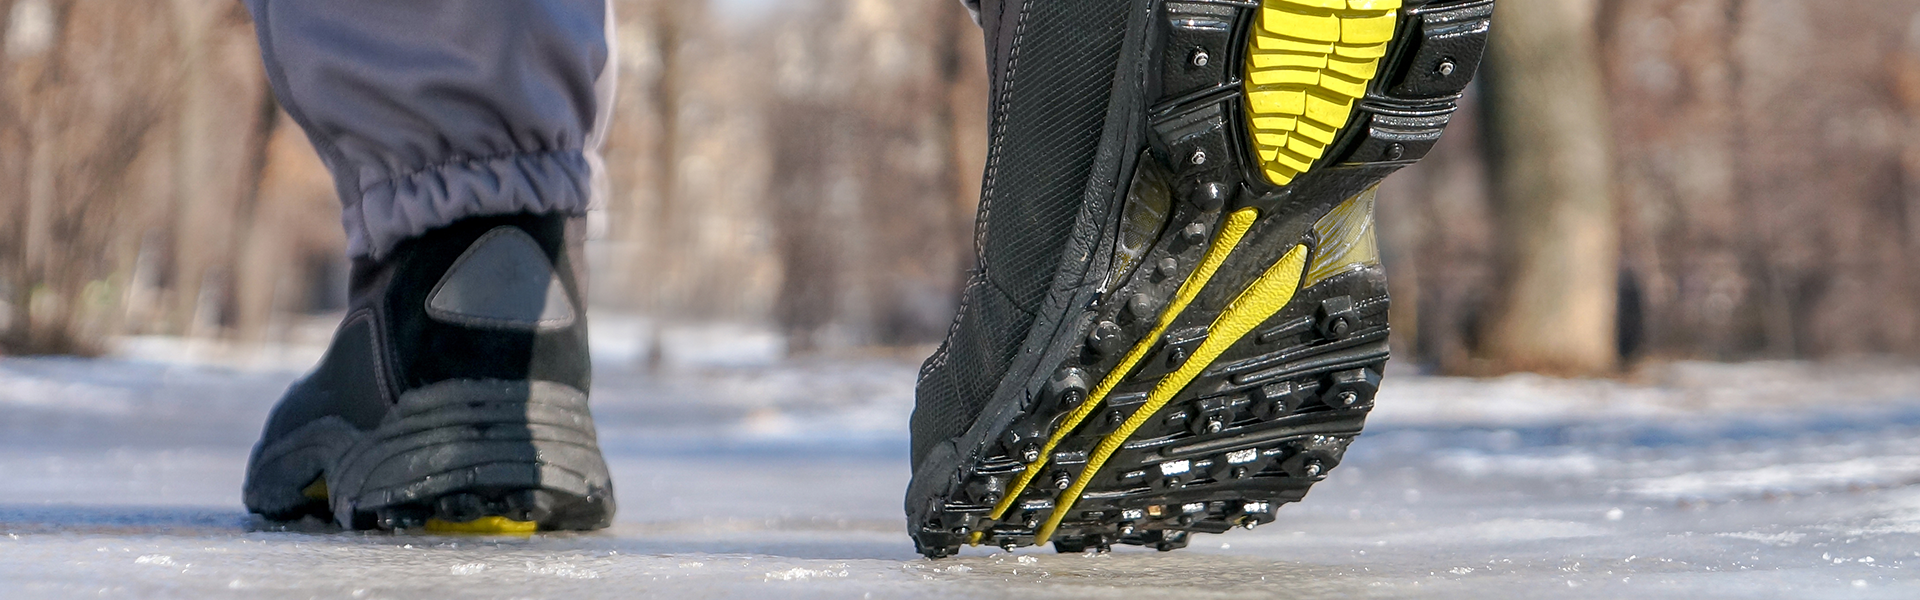 Person with black boots walking on ice.